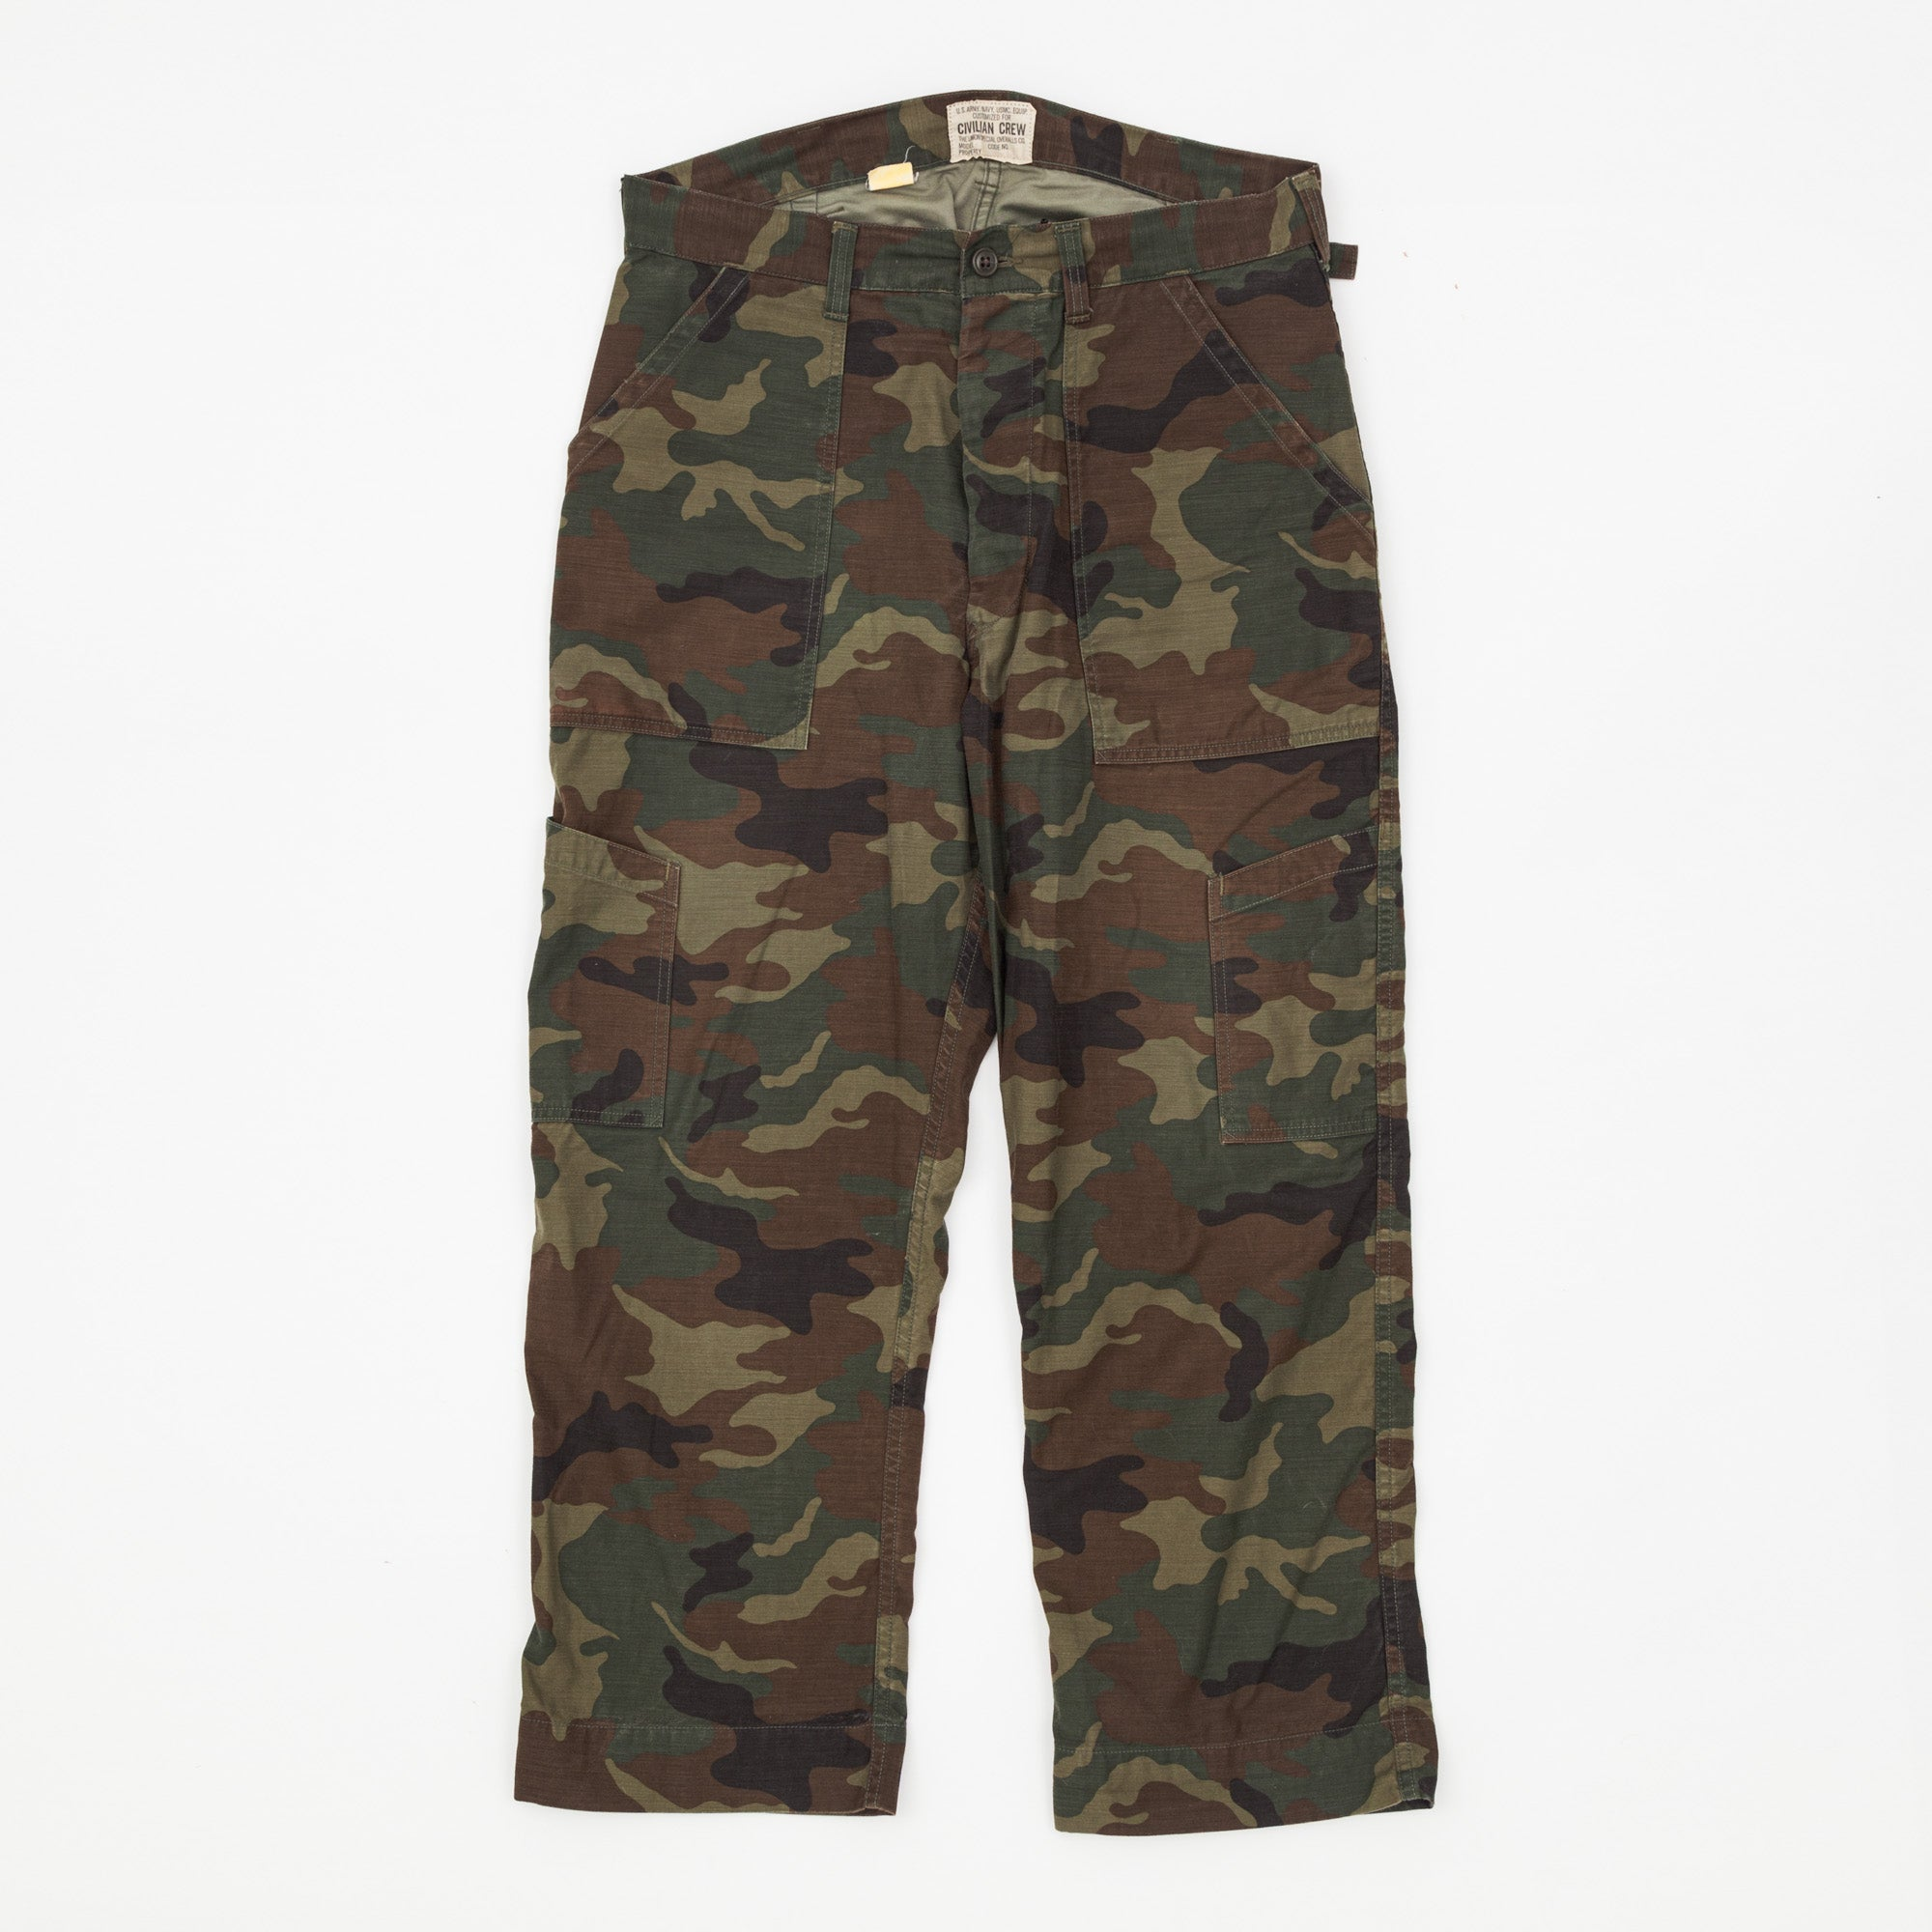 Freewheelers Civilian Crew Camo Pants